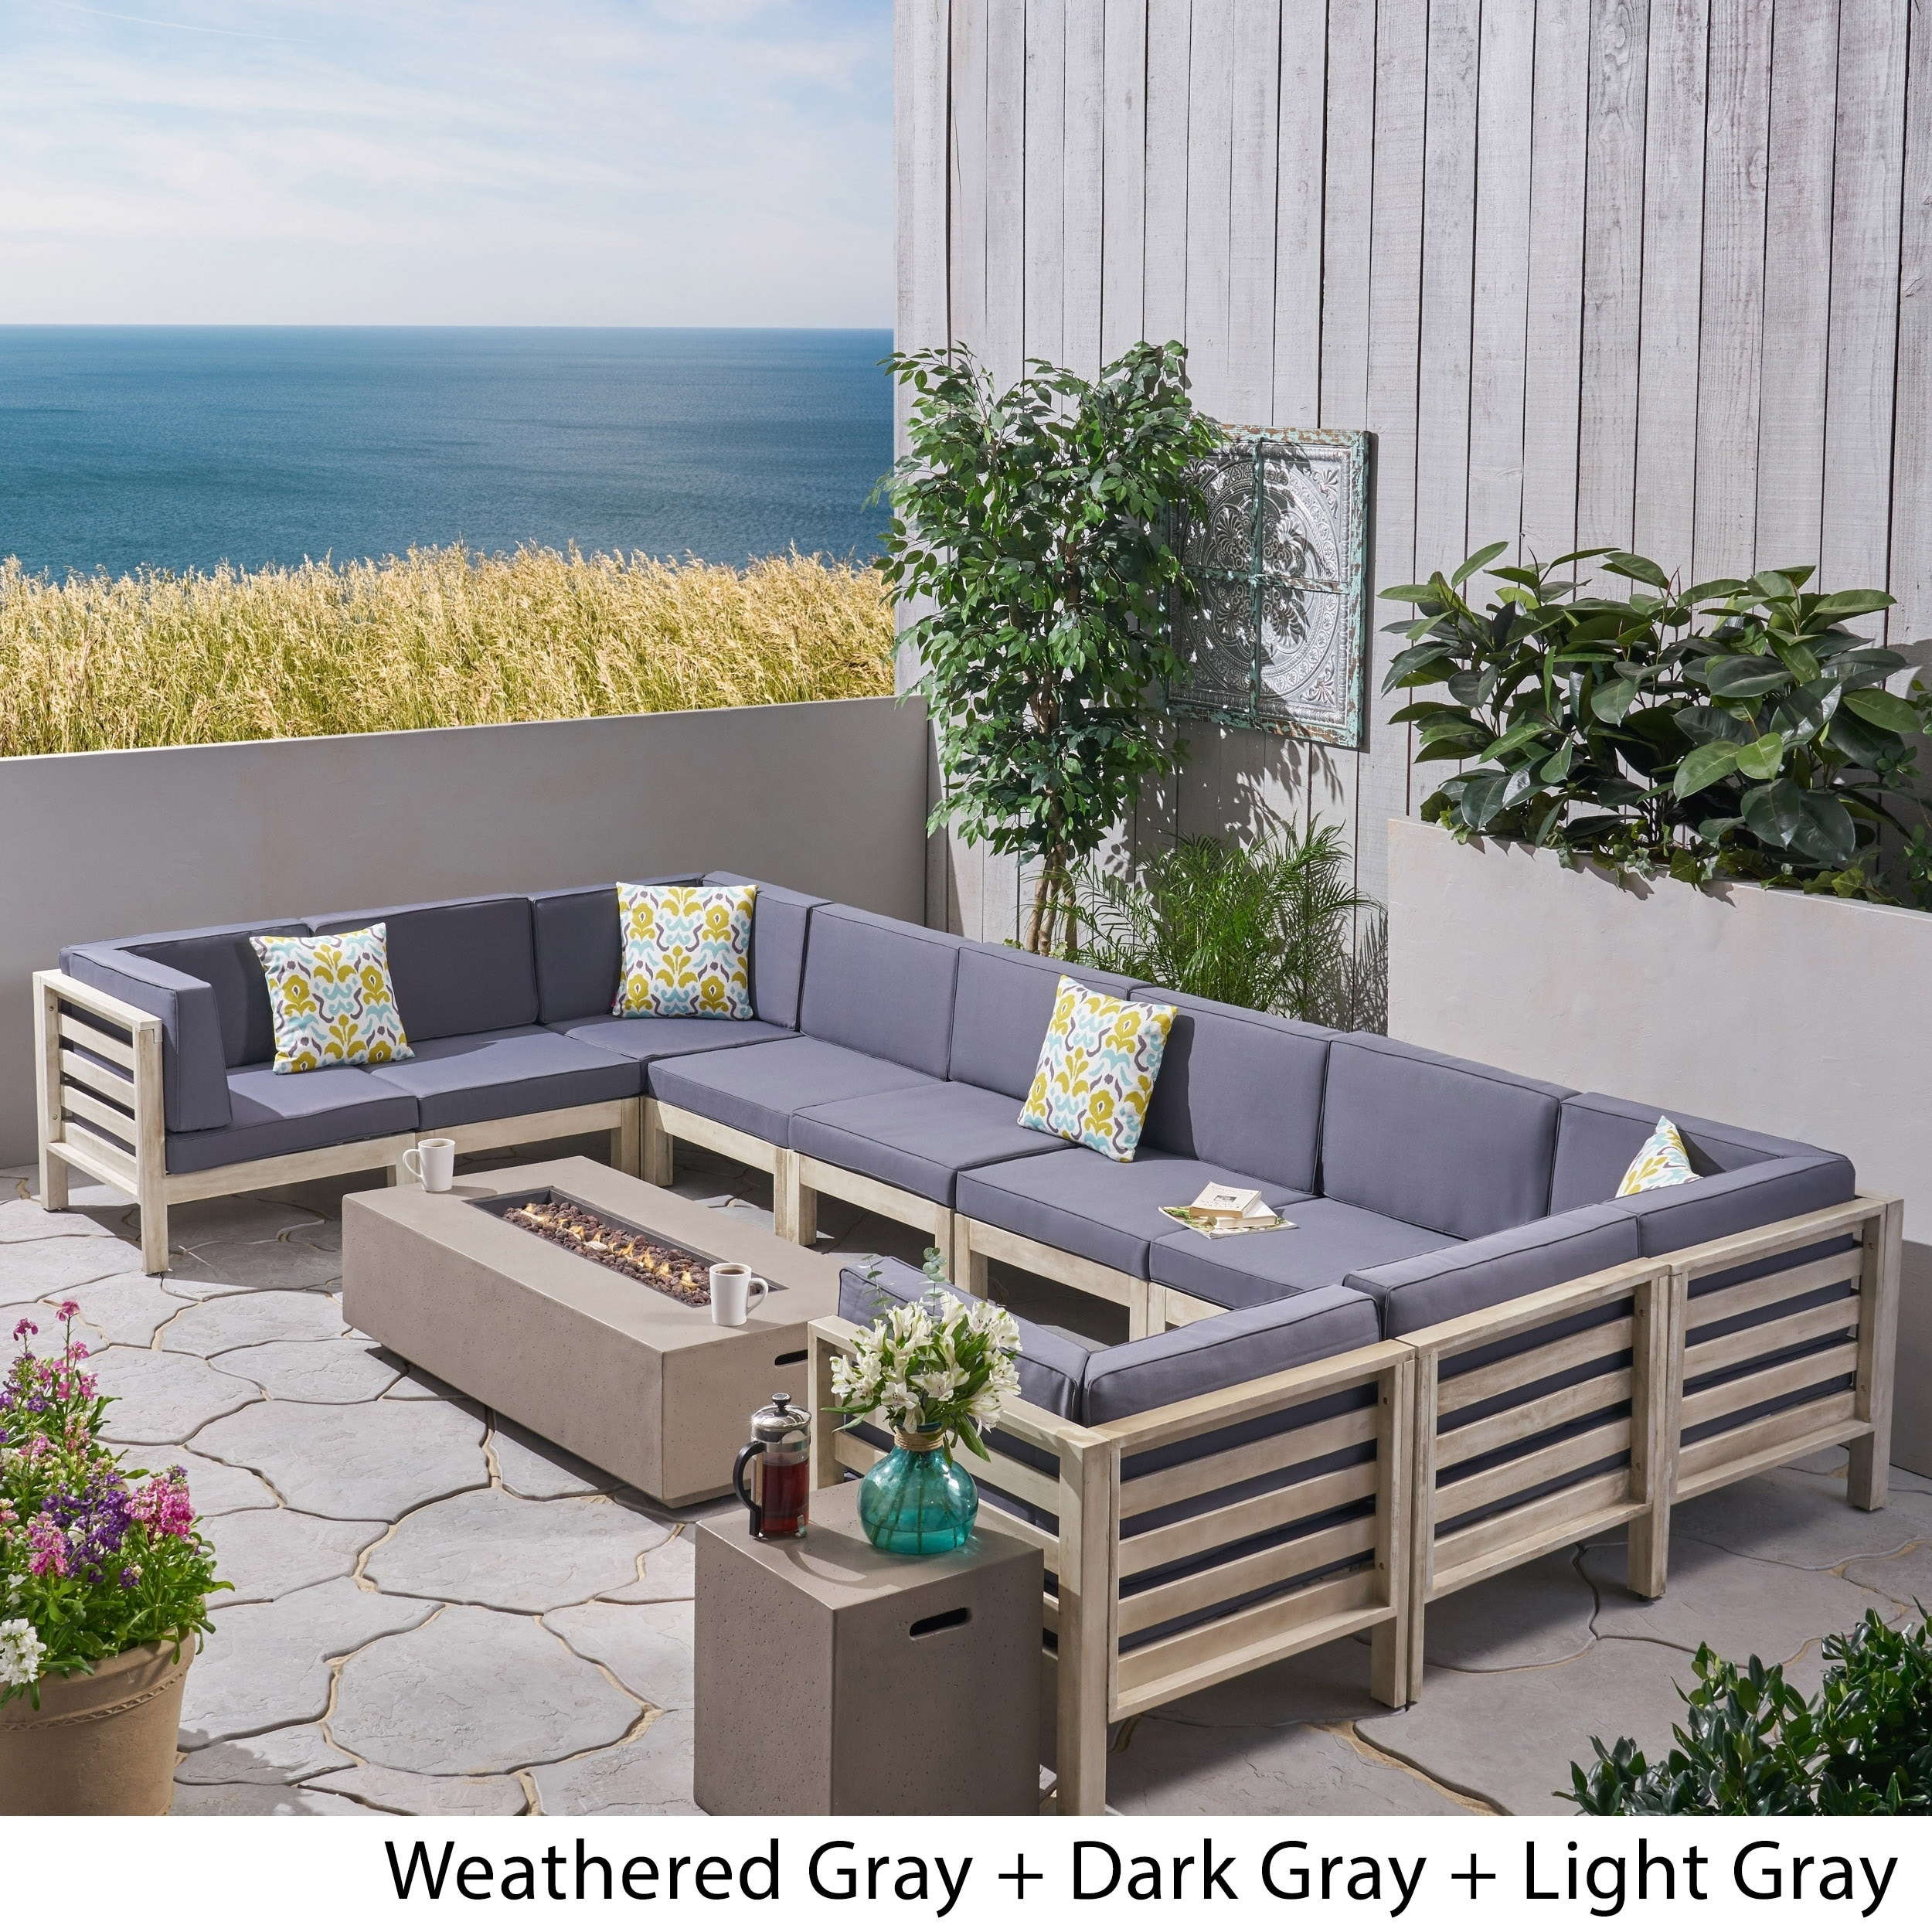 oana outdoor 10 seater u shaped acacia wood sectional sofa set with fire pit by christopher knight home